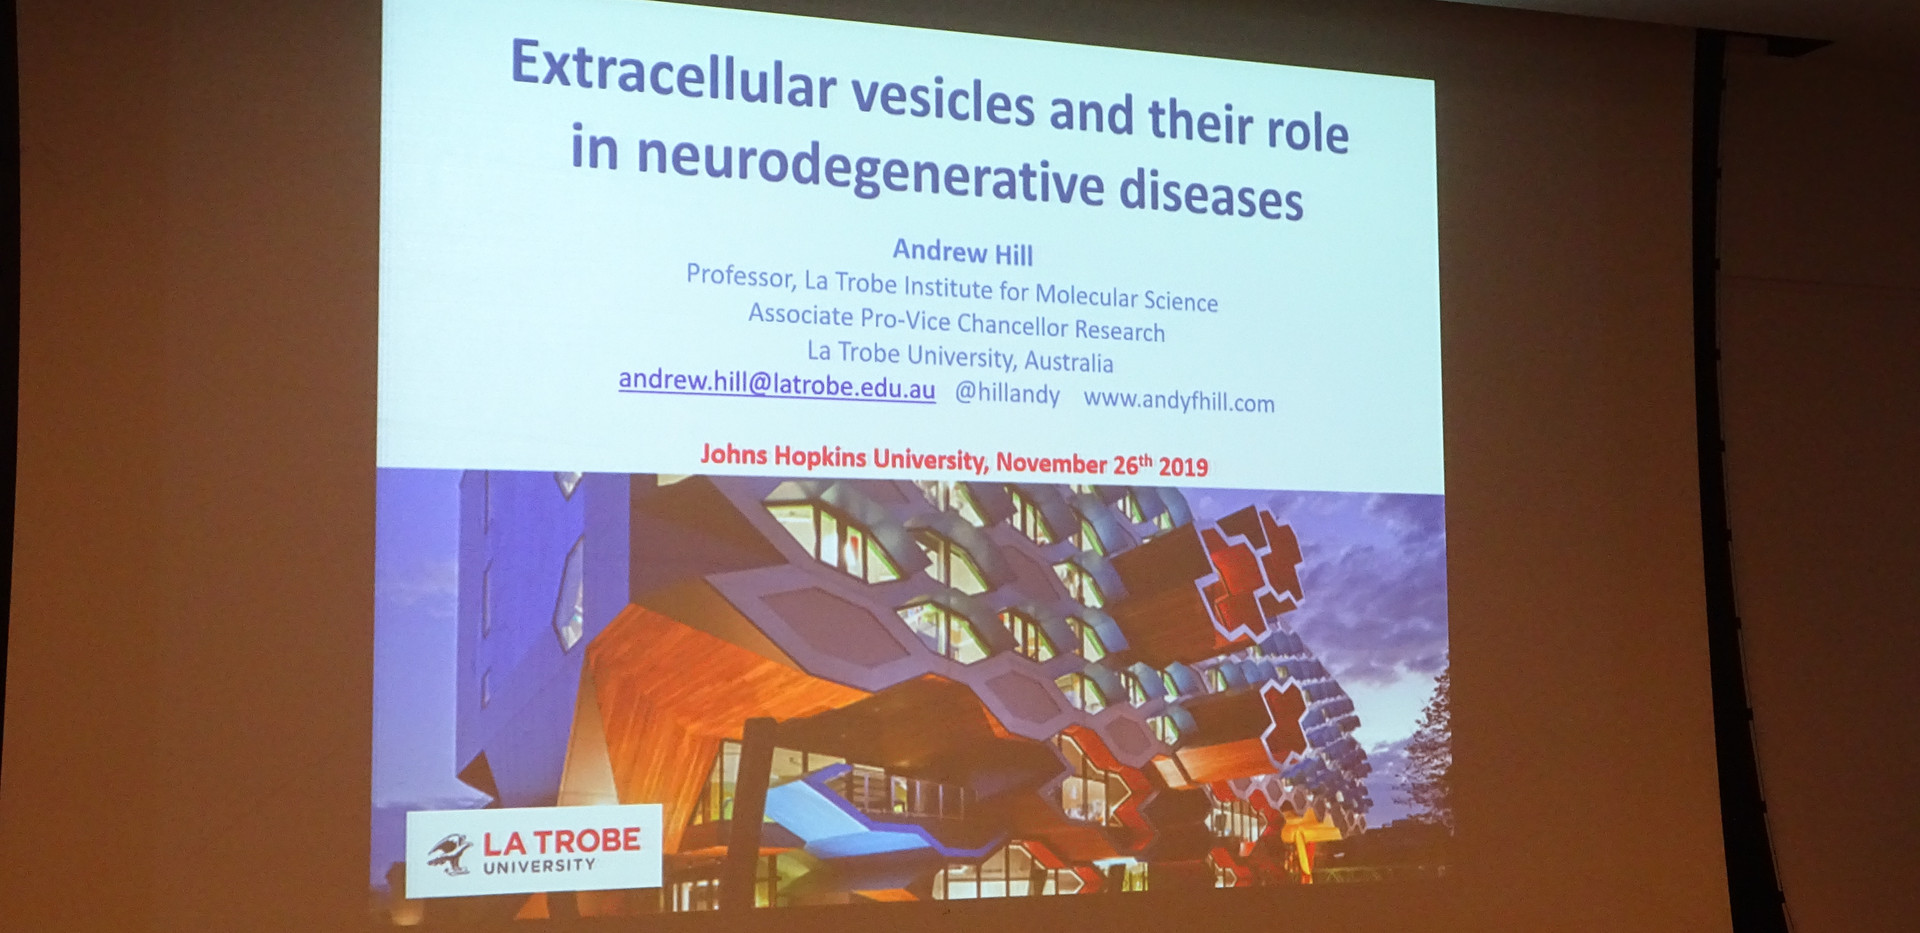 Dr Hill presenting his work on the EVs and their role in neurodegenerative diseases